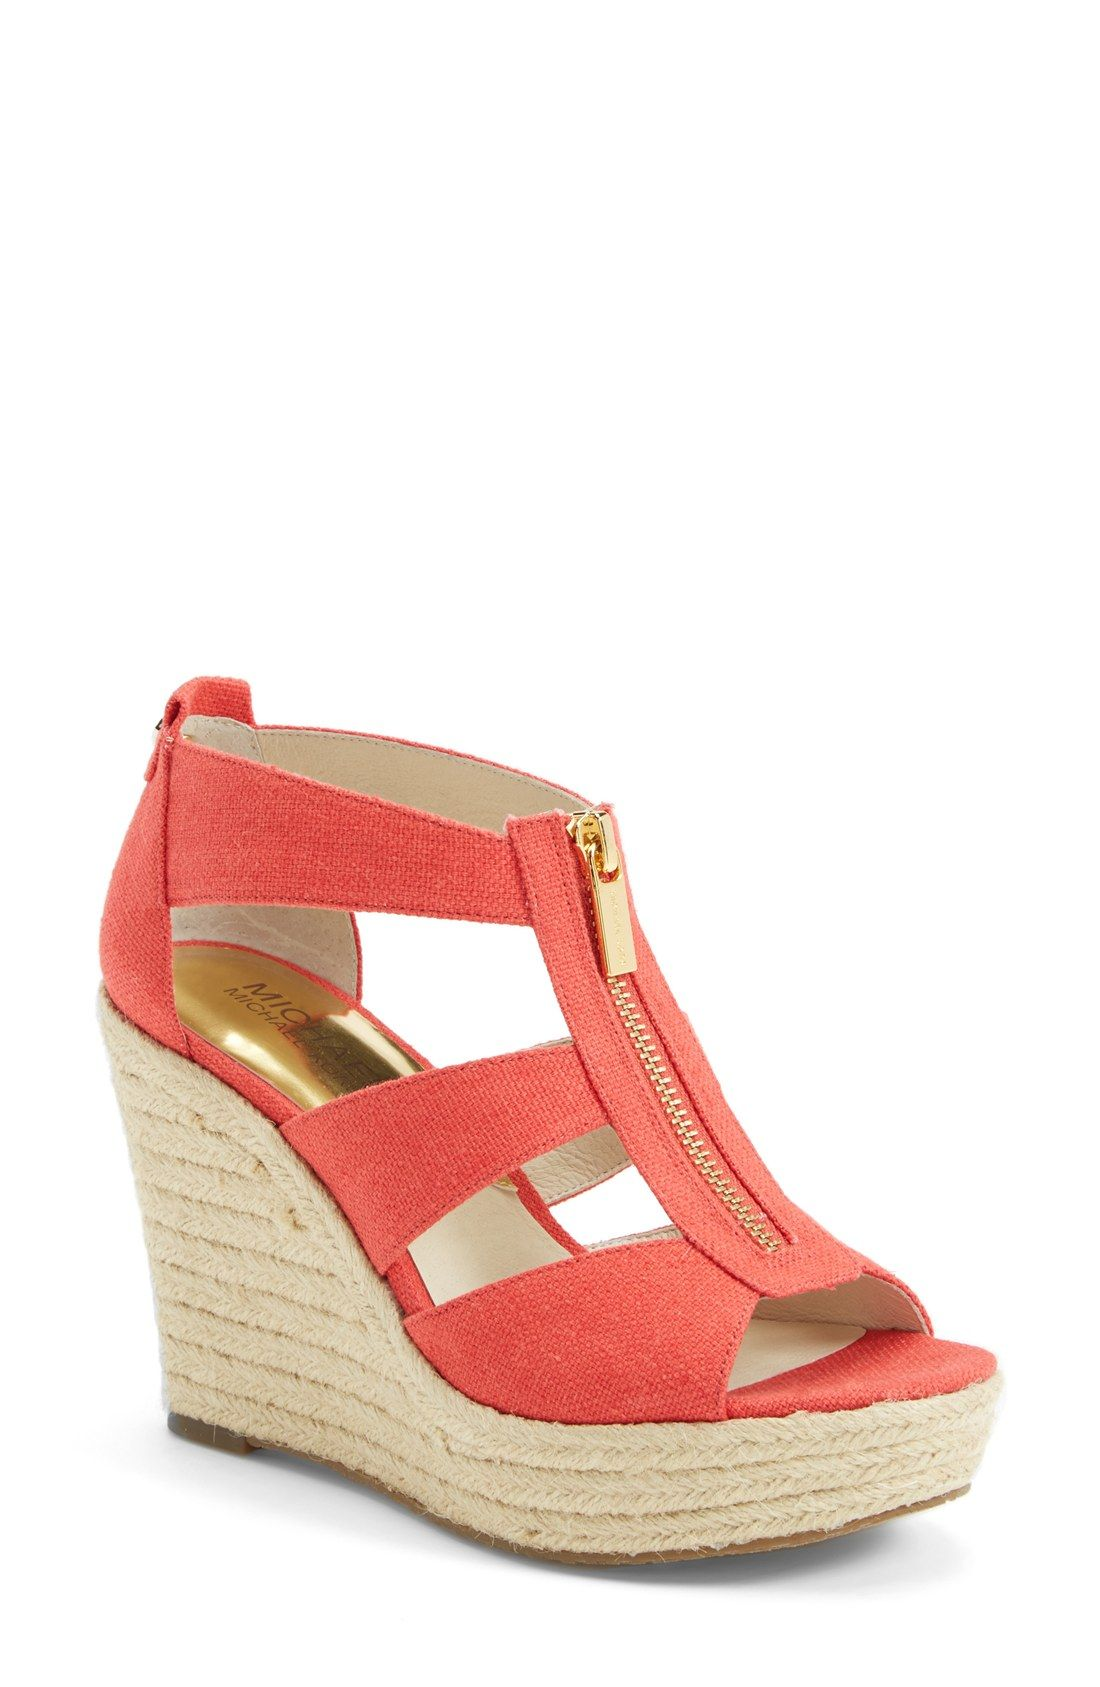 c2652323c746ff Will wear these coral wedge sandals with jeans and a cute tee.